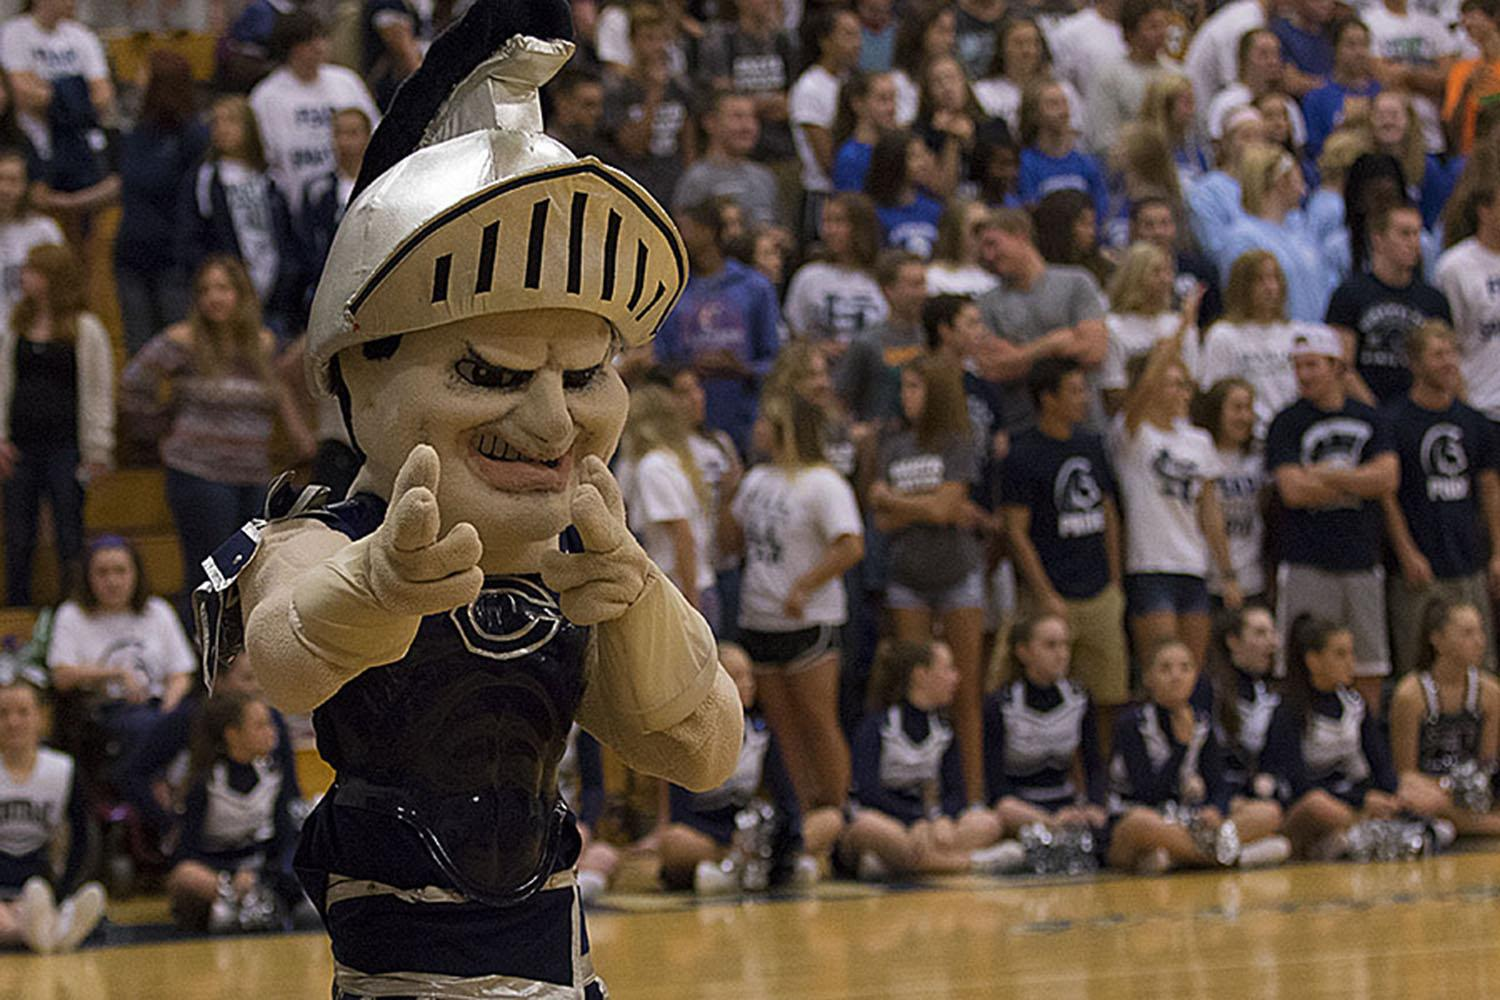 King Leo shoots the camera a wink during the Fox 2 Pep Rally.